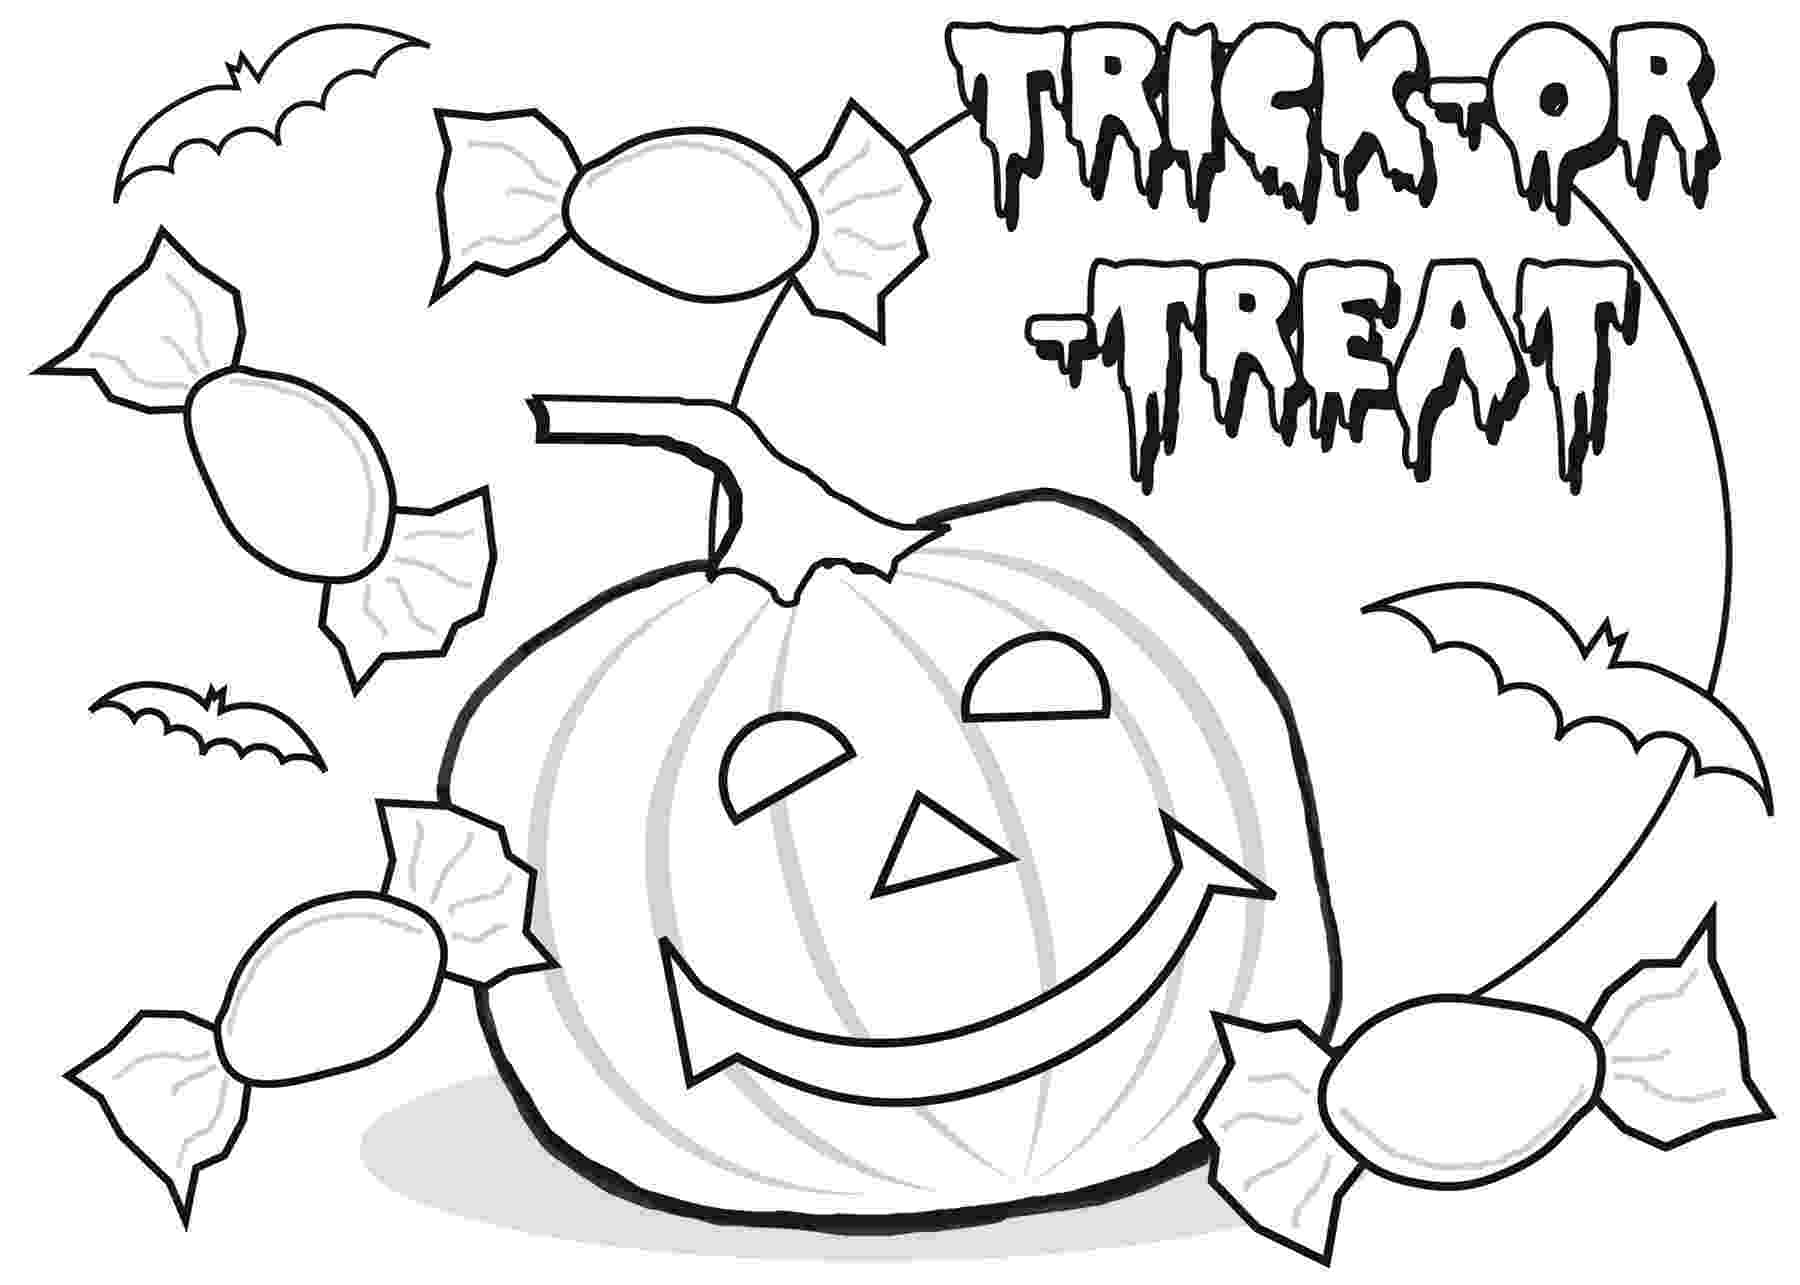 colouring pages for halloween free printable spooky coloring pages hallow holics anonymous pages halloween free for printable colouring